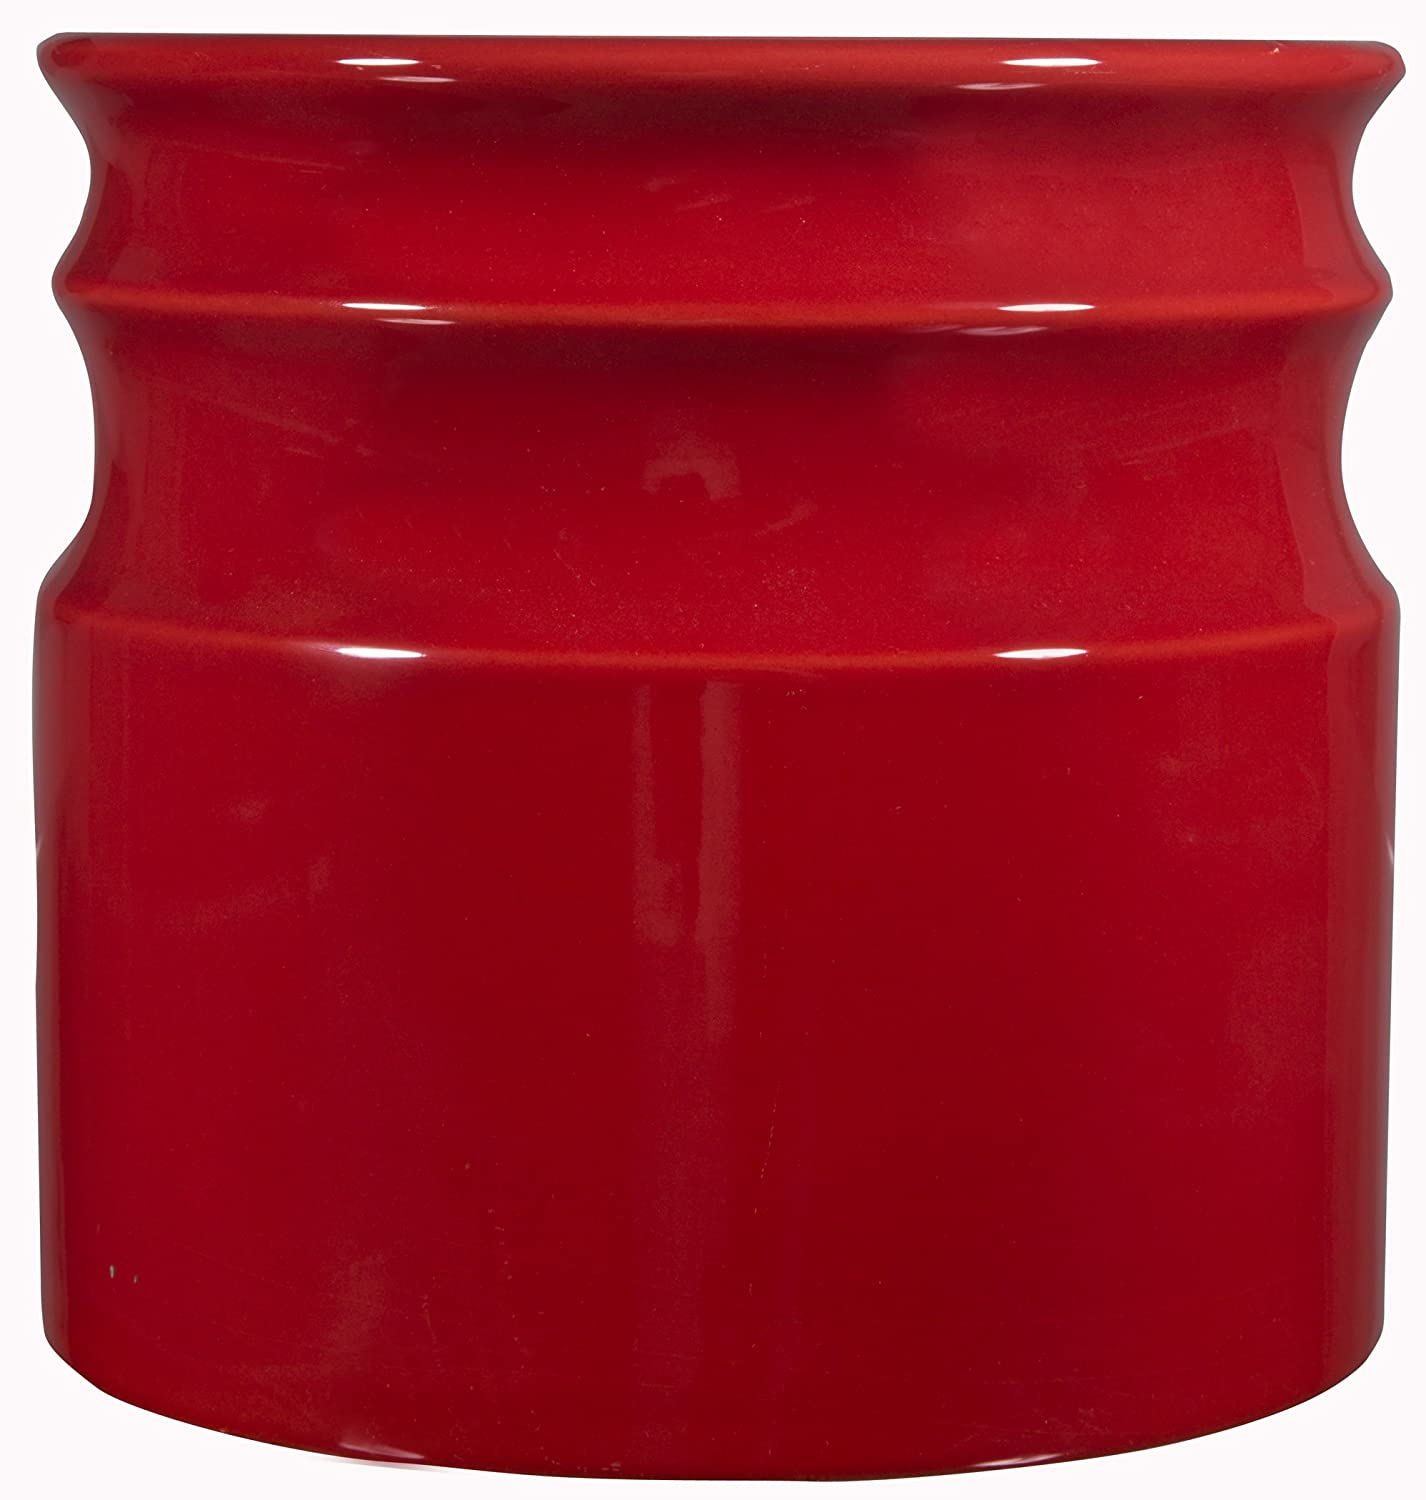 Home Essentials & Beyond 66379 7.5 D in. Turino Rings Utensil Crock - Red 66379-HE